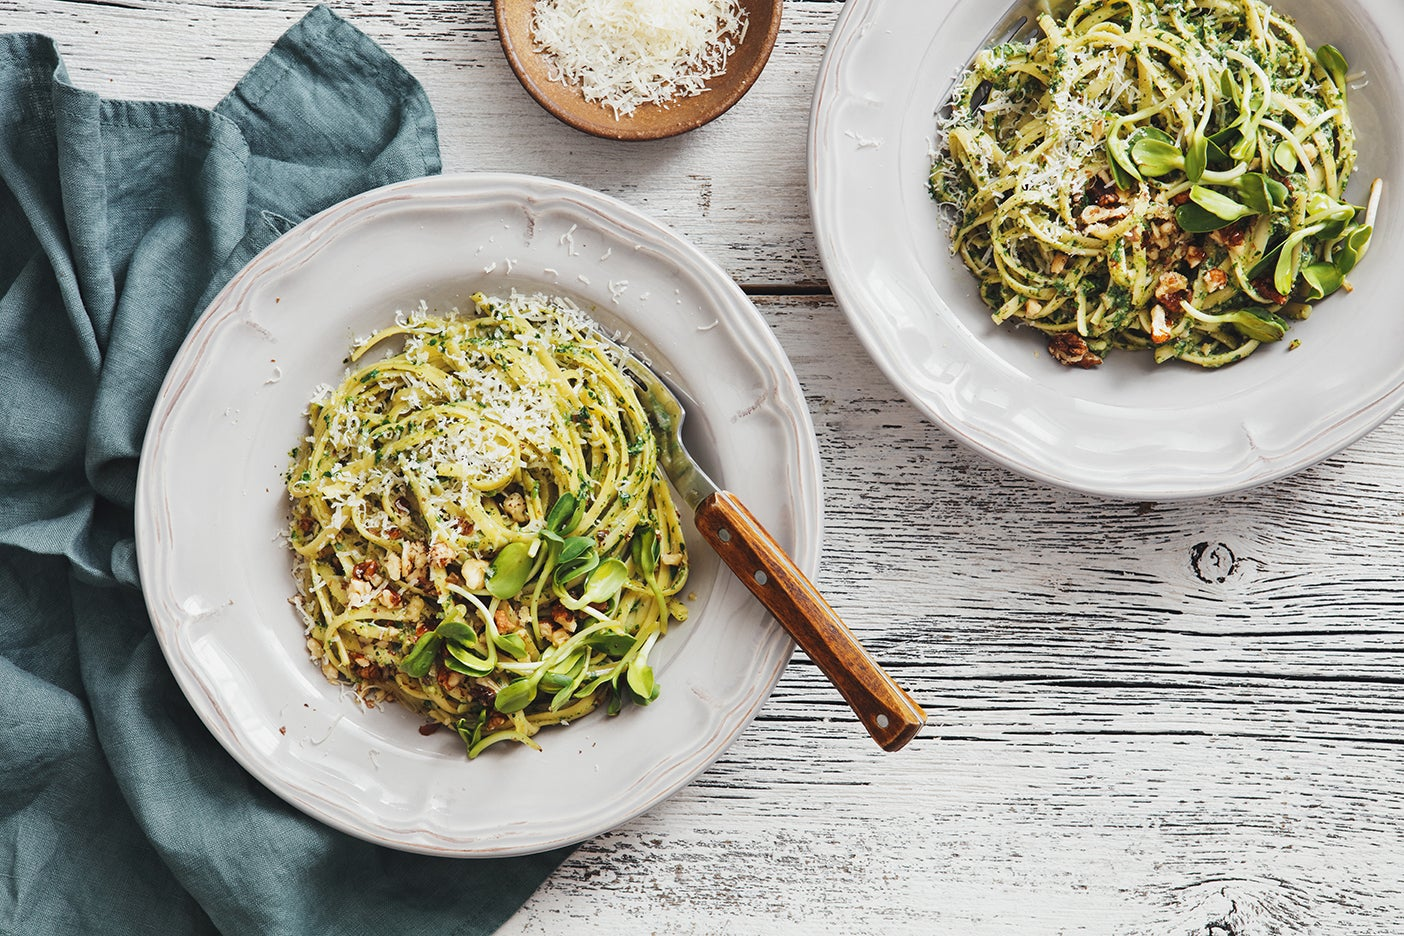 Spaghetti with vegetables, spinach and parmesan